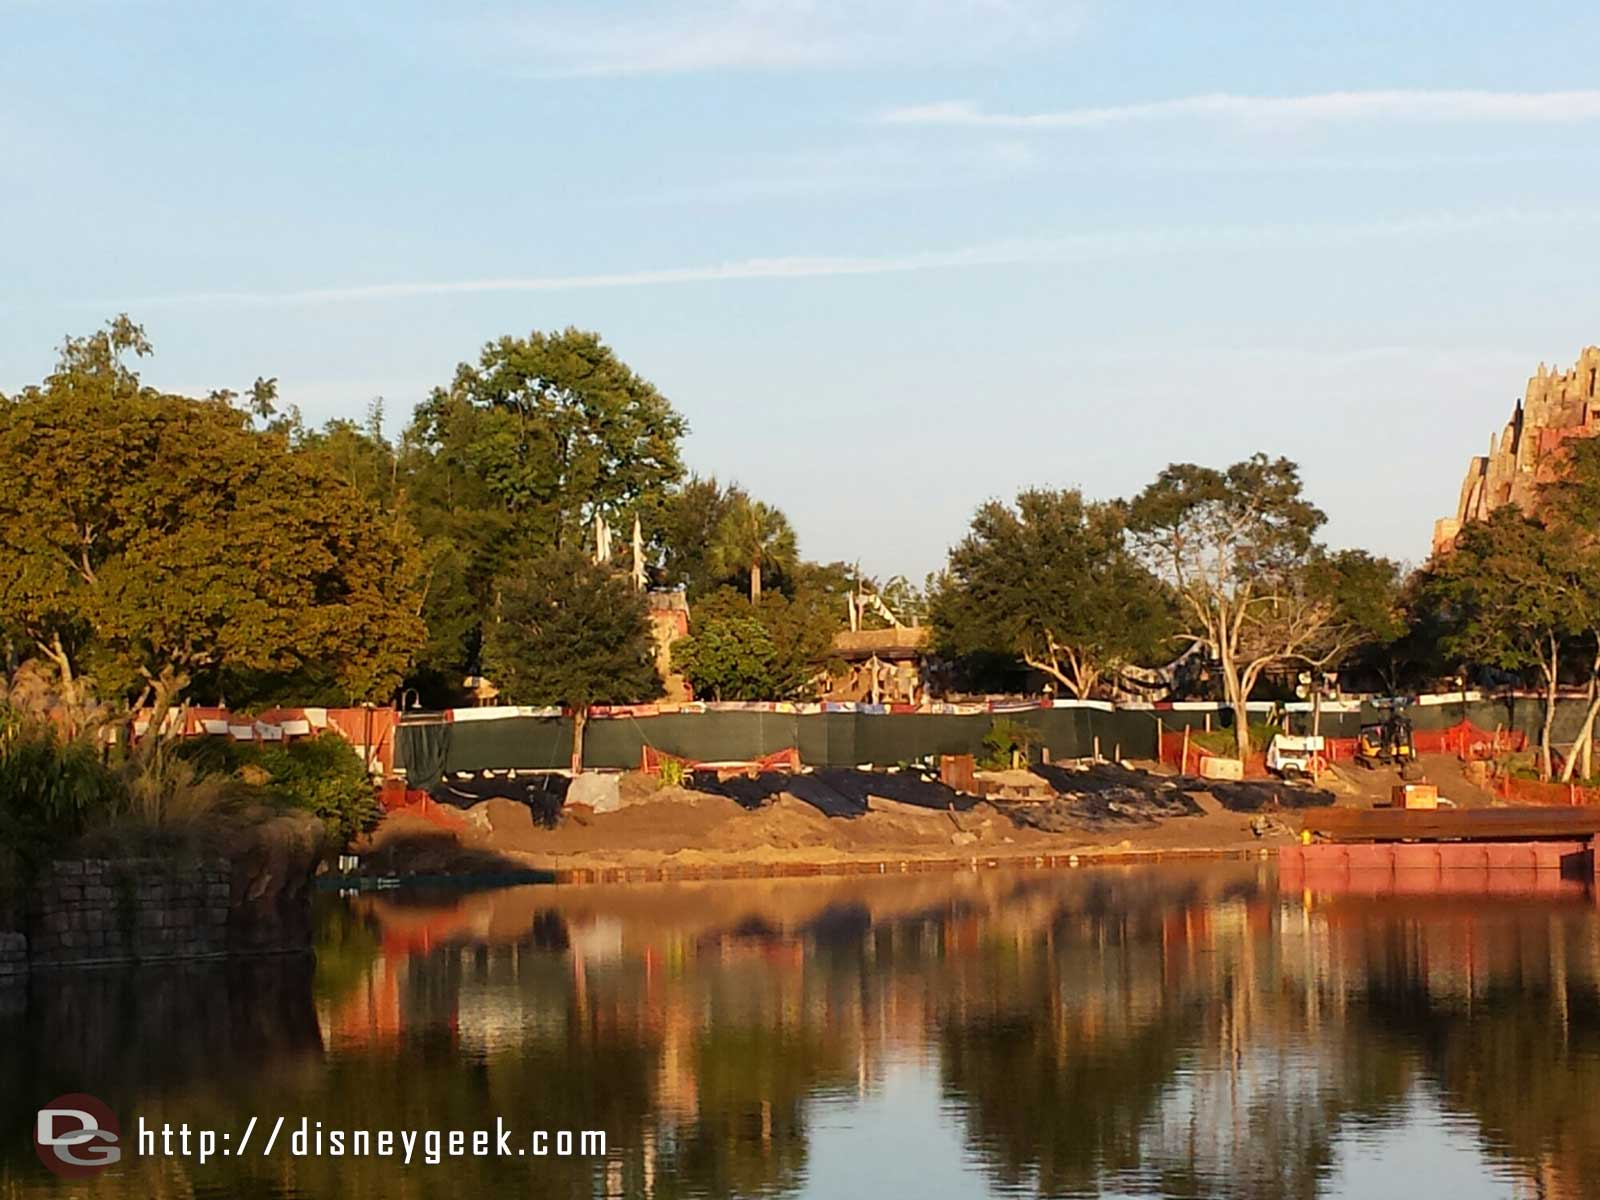 One more Rivers of Light construction at Disney's Animal Kingdom